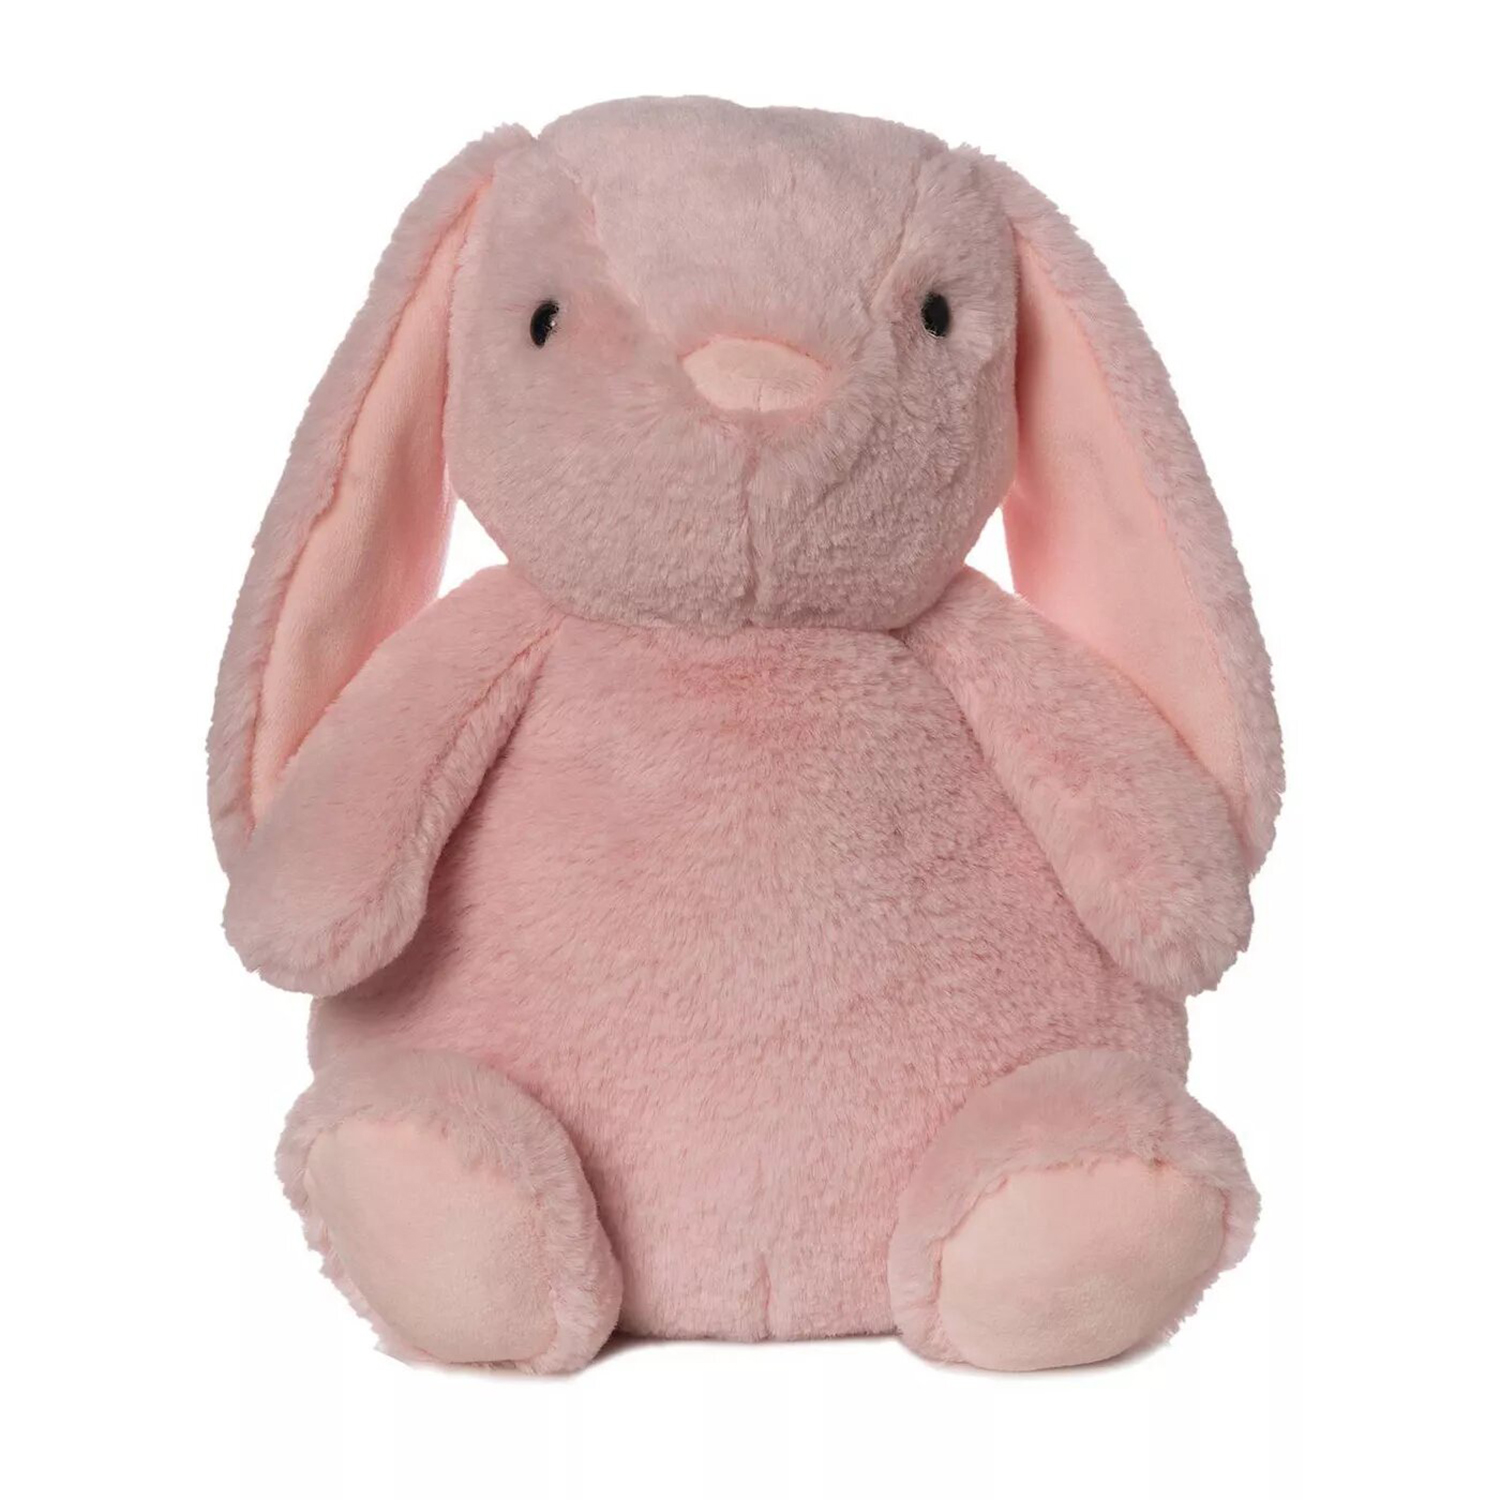 The Manhattan Toy Company Bumpers Bunny Stuffed Animal